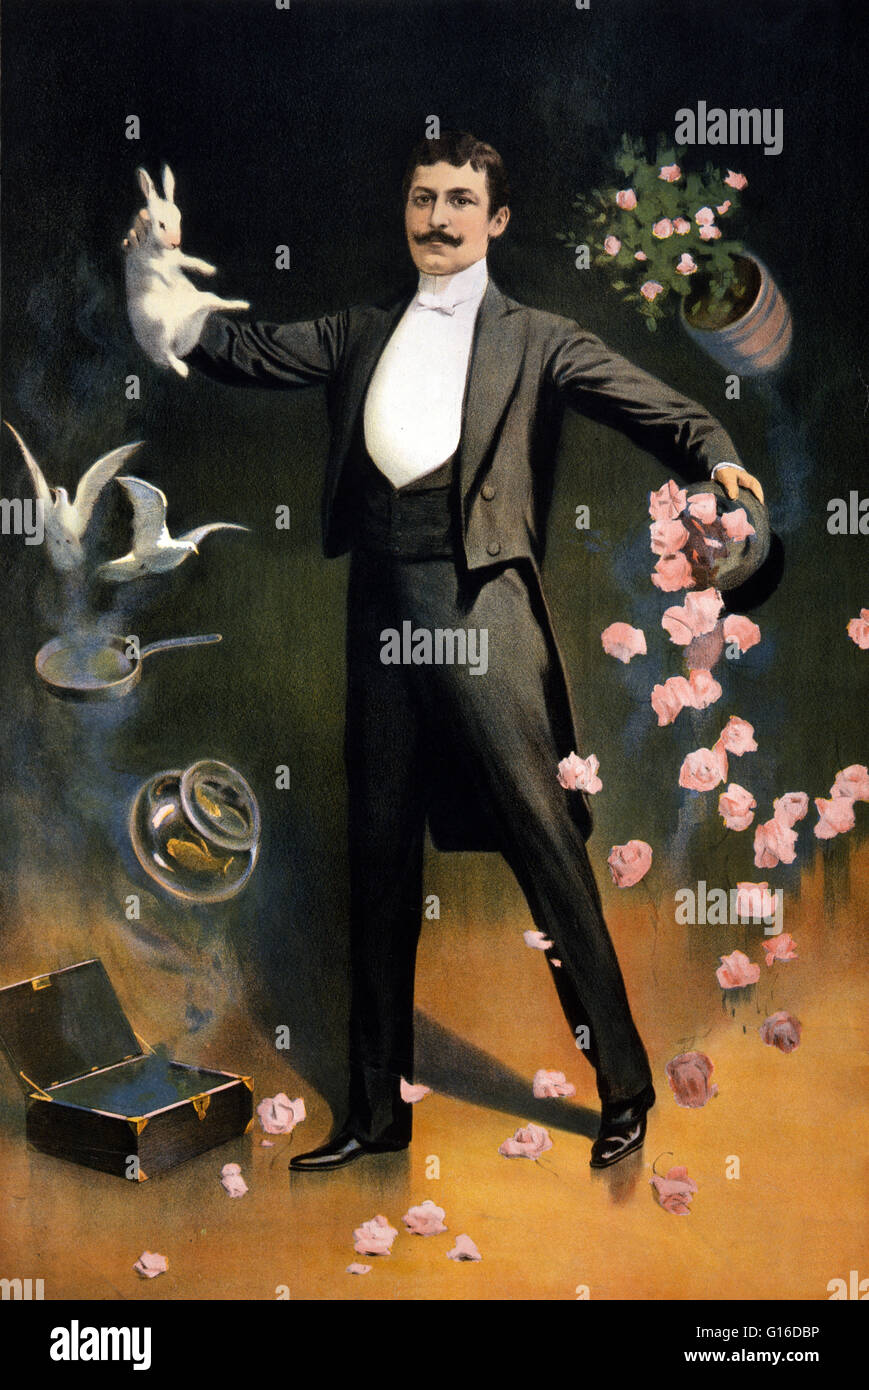 Entitled: 'Zan Zig performing with rabbit and roses, including hat trick and levitation' lithograph poster - Stock Image